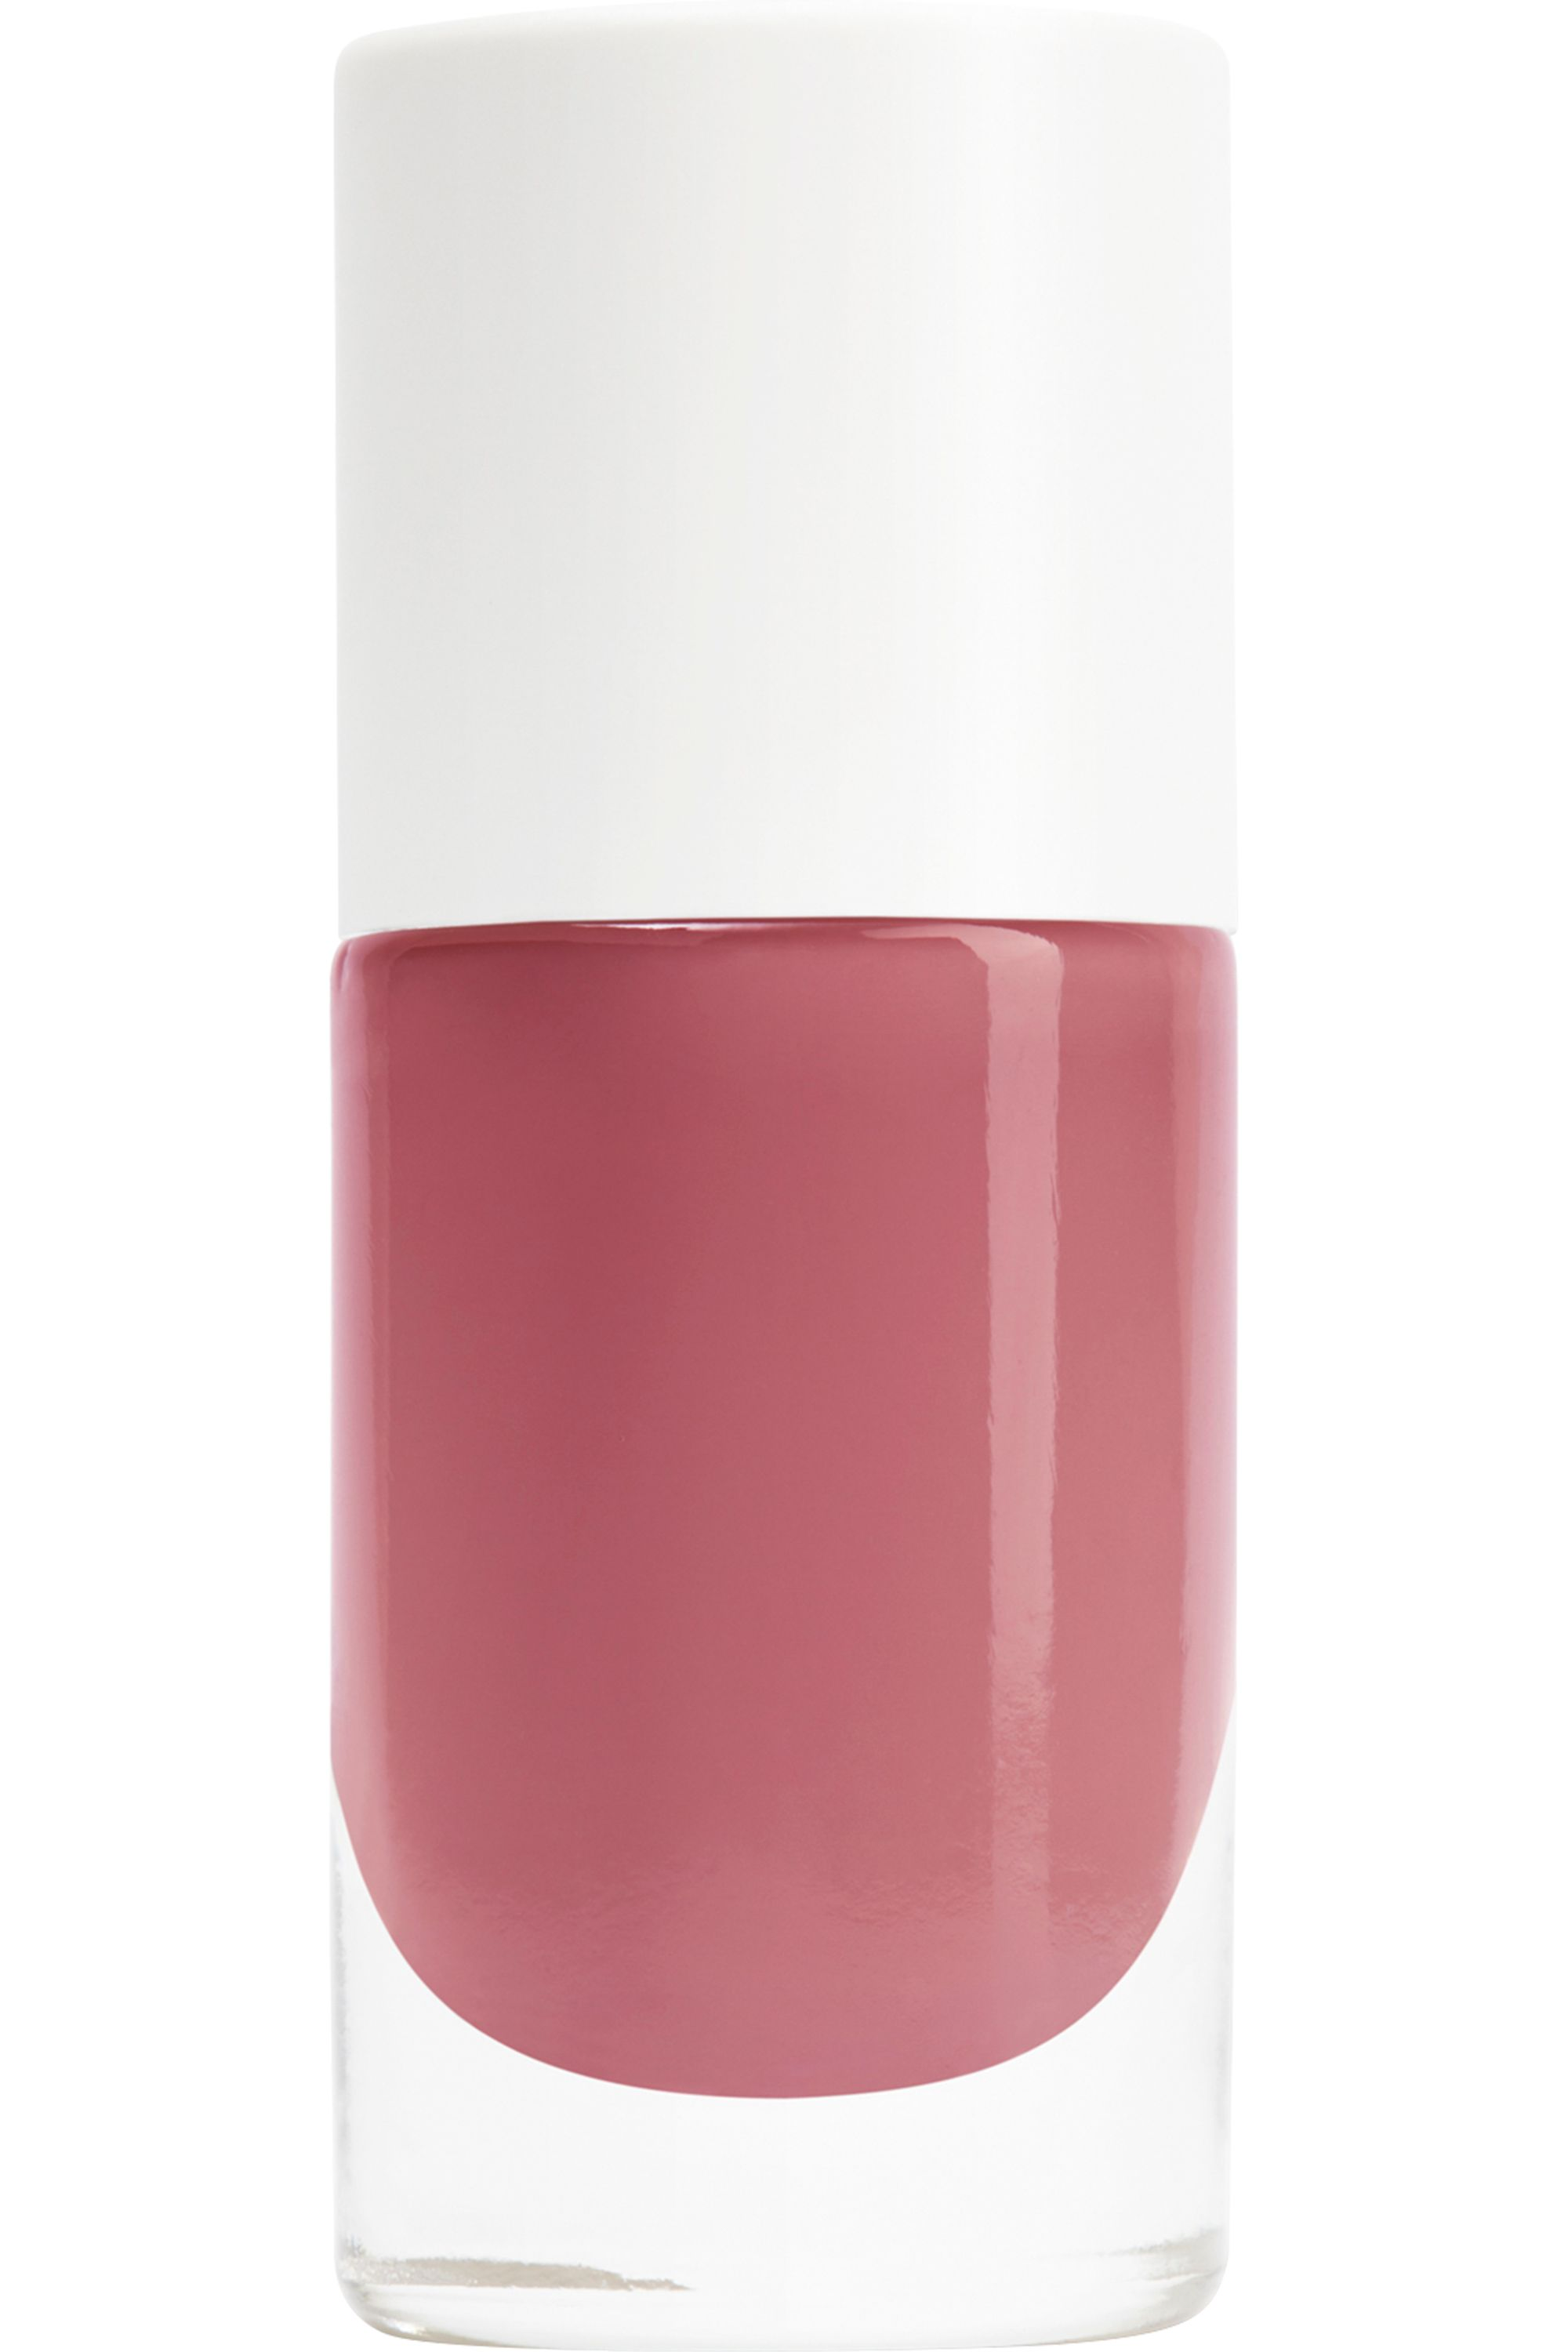 Blissim : Nailmatic - Vernis à ongles Pure Color - Pure Color Ninon